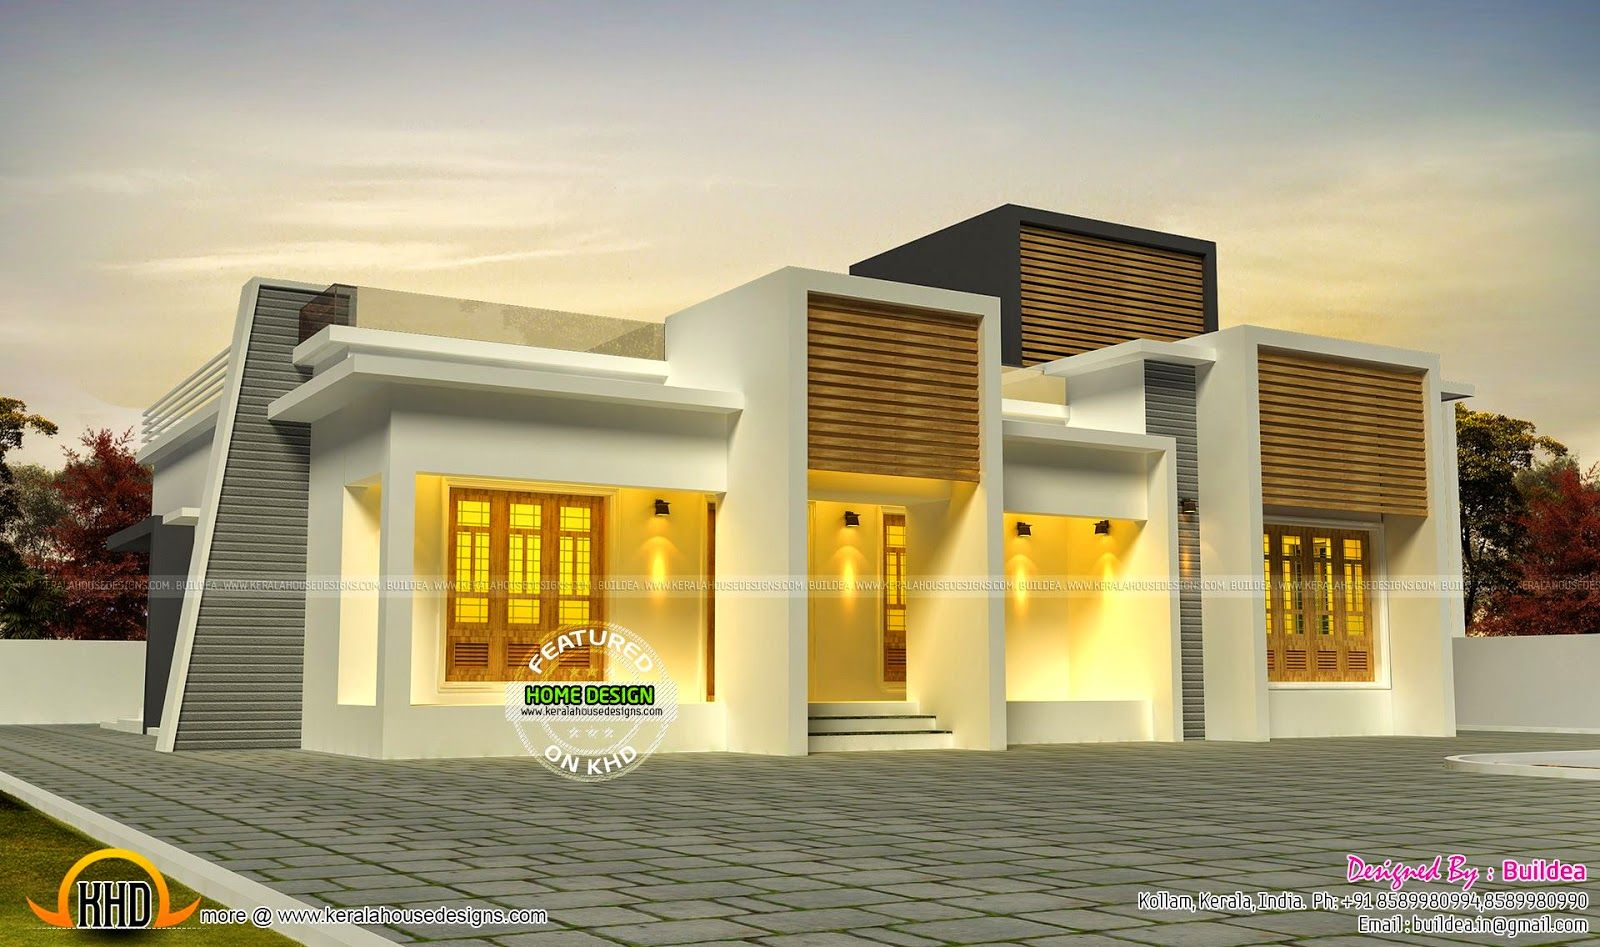 Flat roof elevation of single storied 2 bedroom house for Kerala home design flat roof elevation